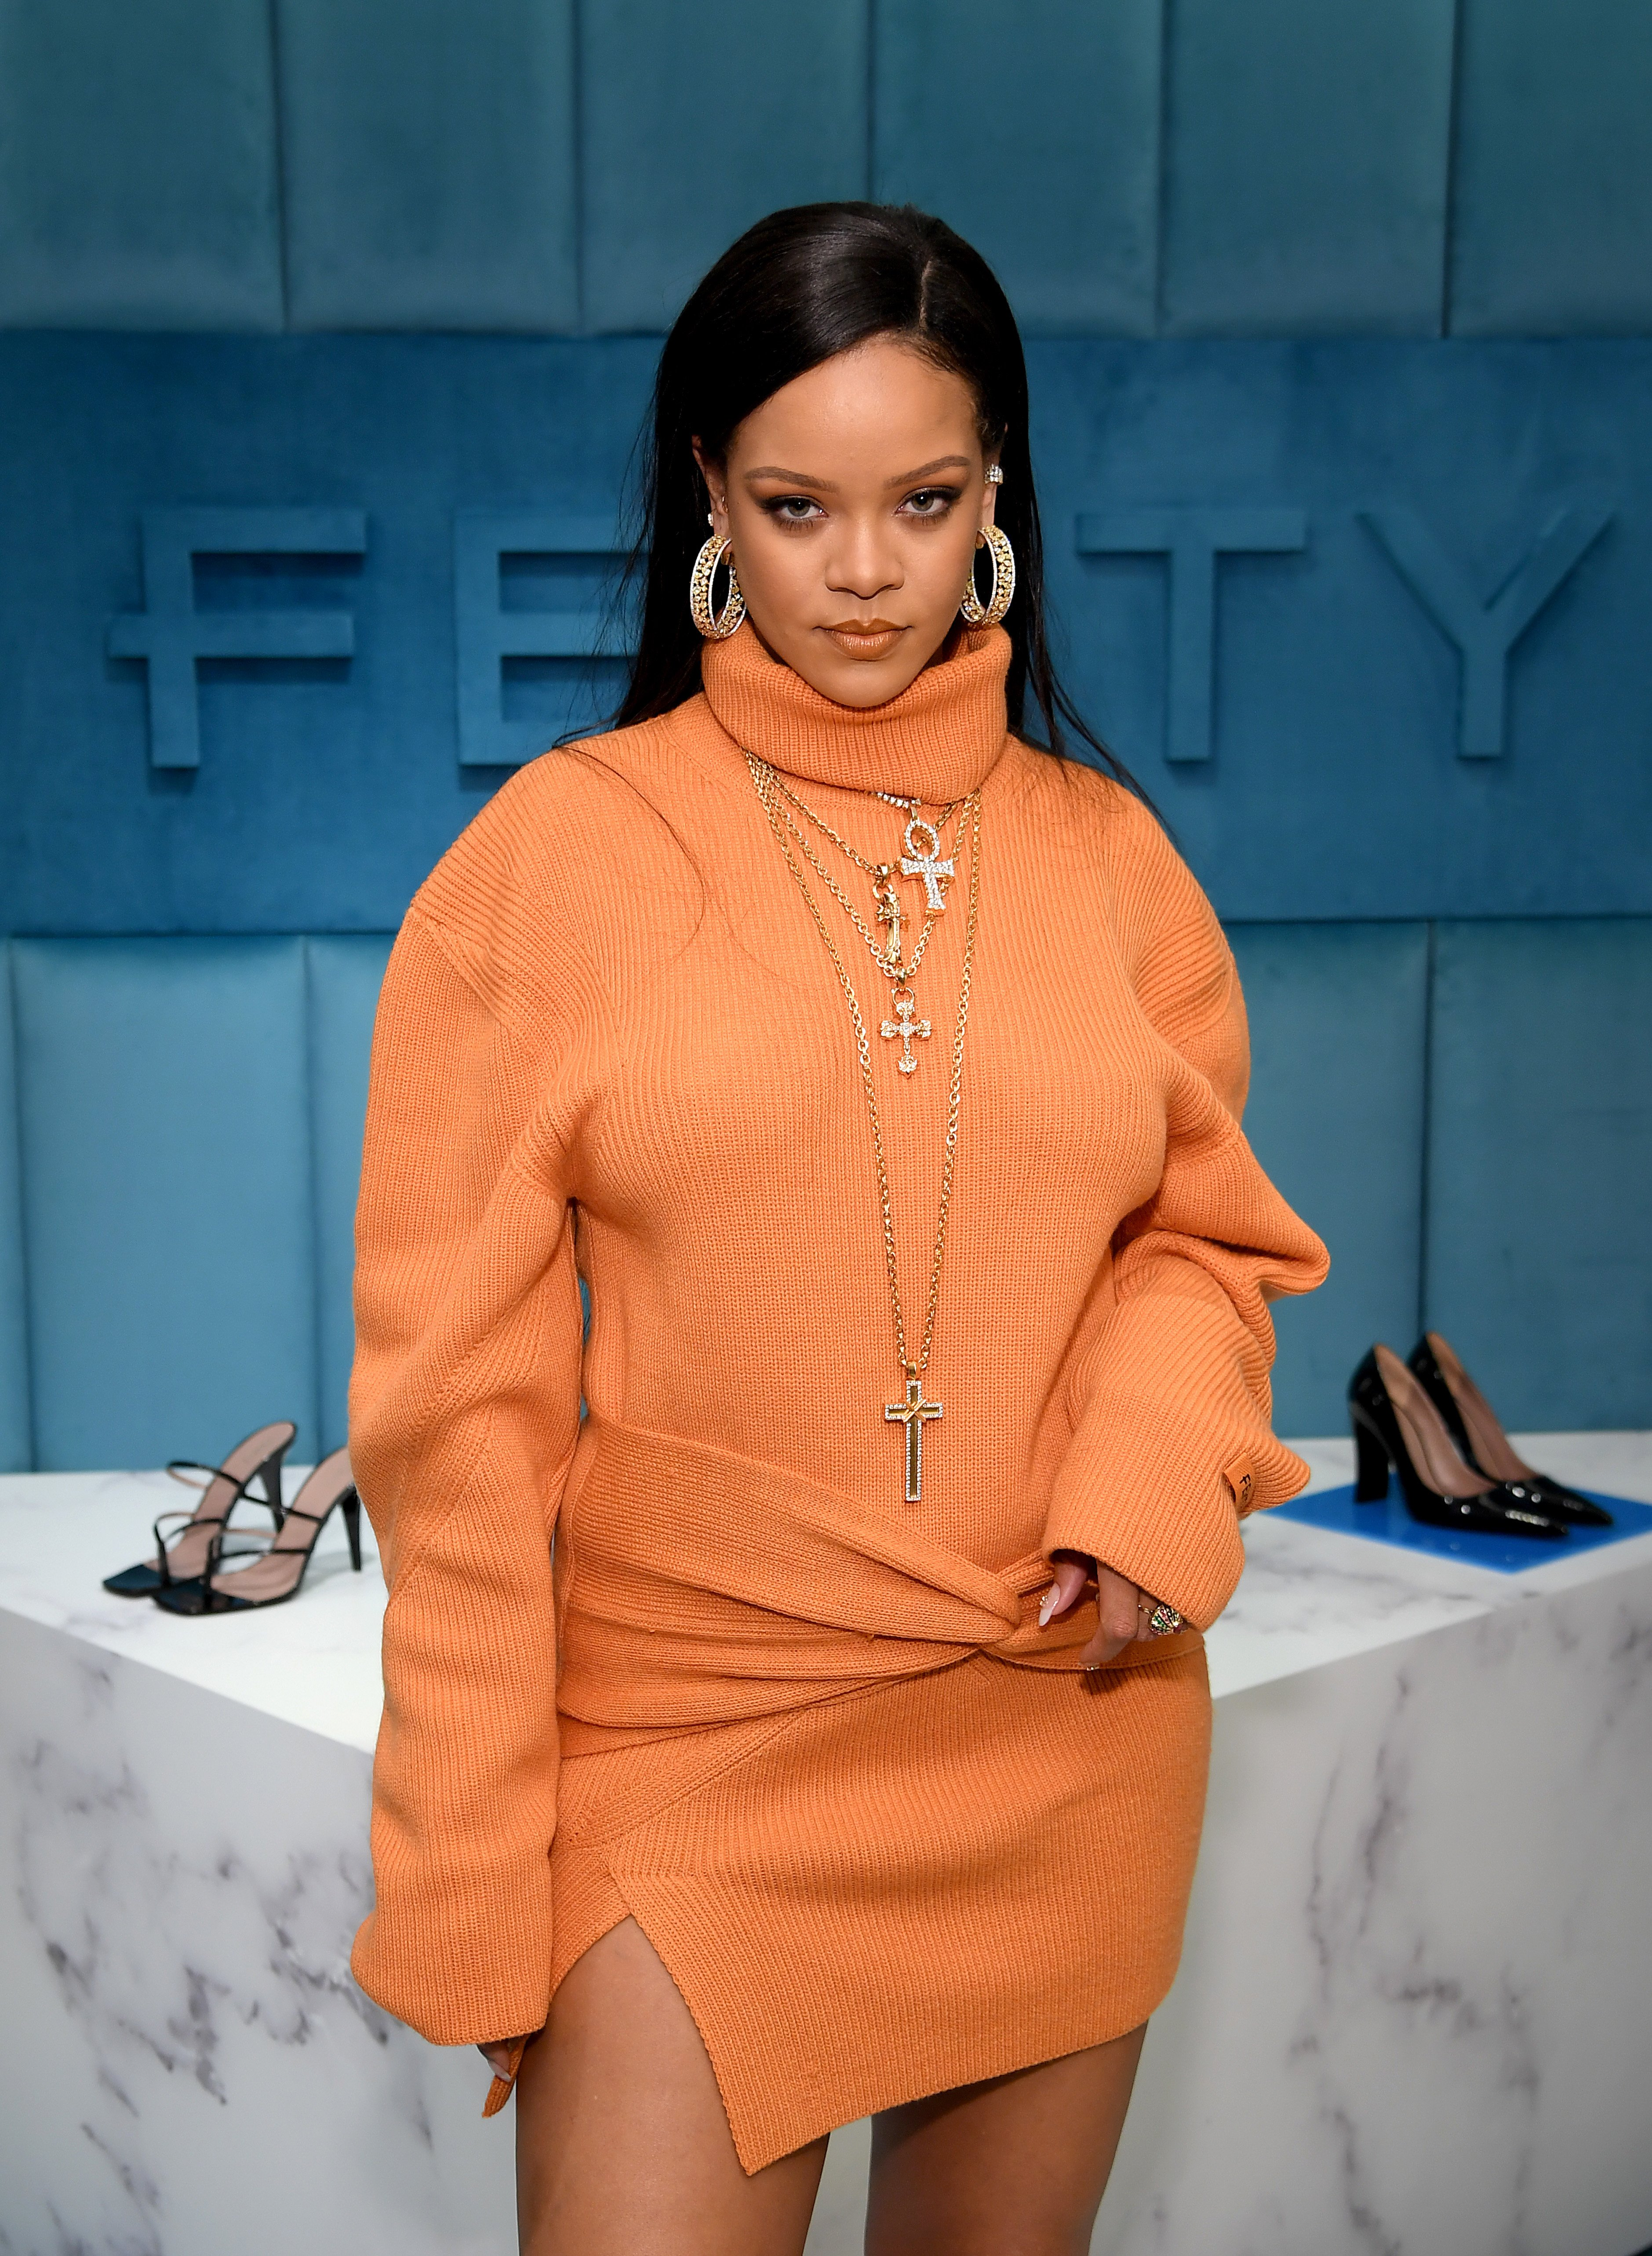 Pop star Rihanna and Linda Fargo celebrate the launch of FENTY at Bergdorf Goodman at Bergdorf Goodman on February 07, 2020 in New York City   Photo: Getty Images